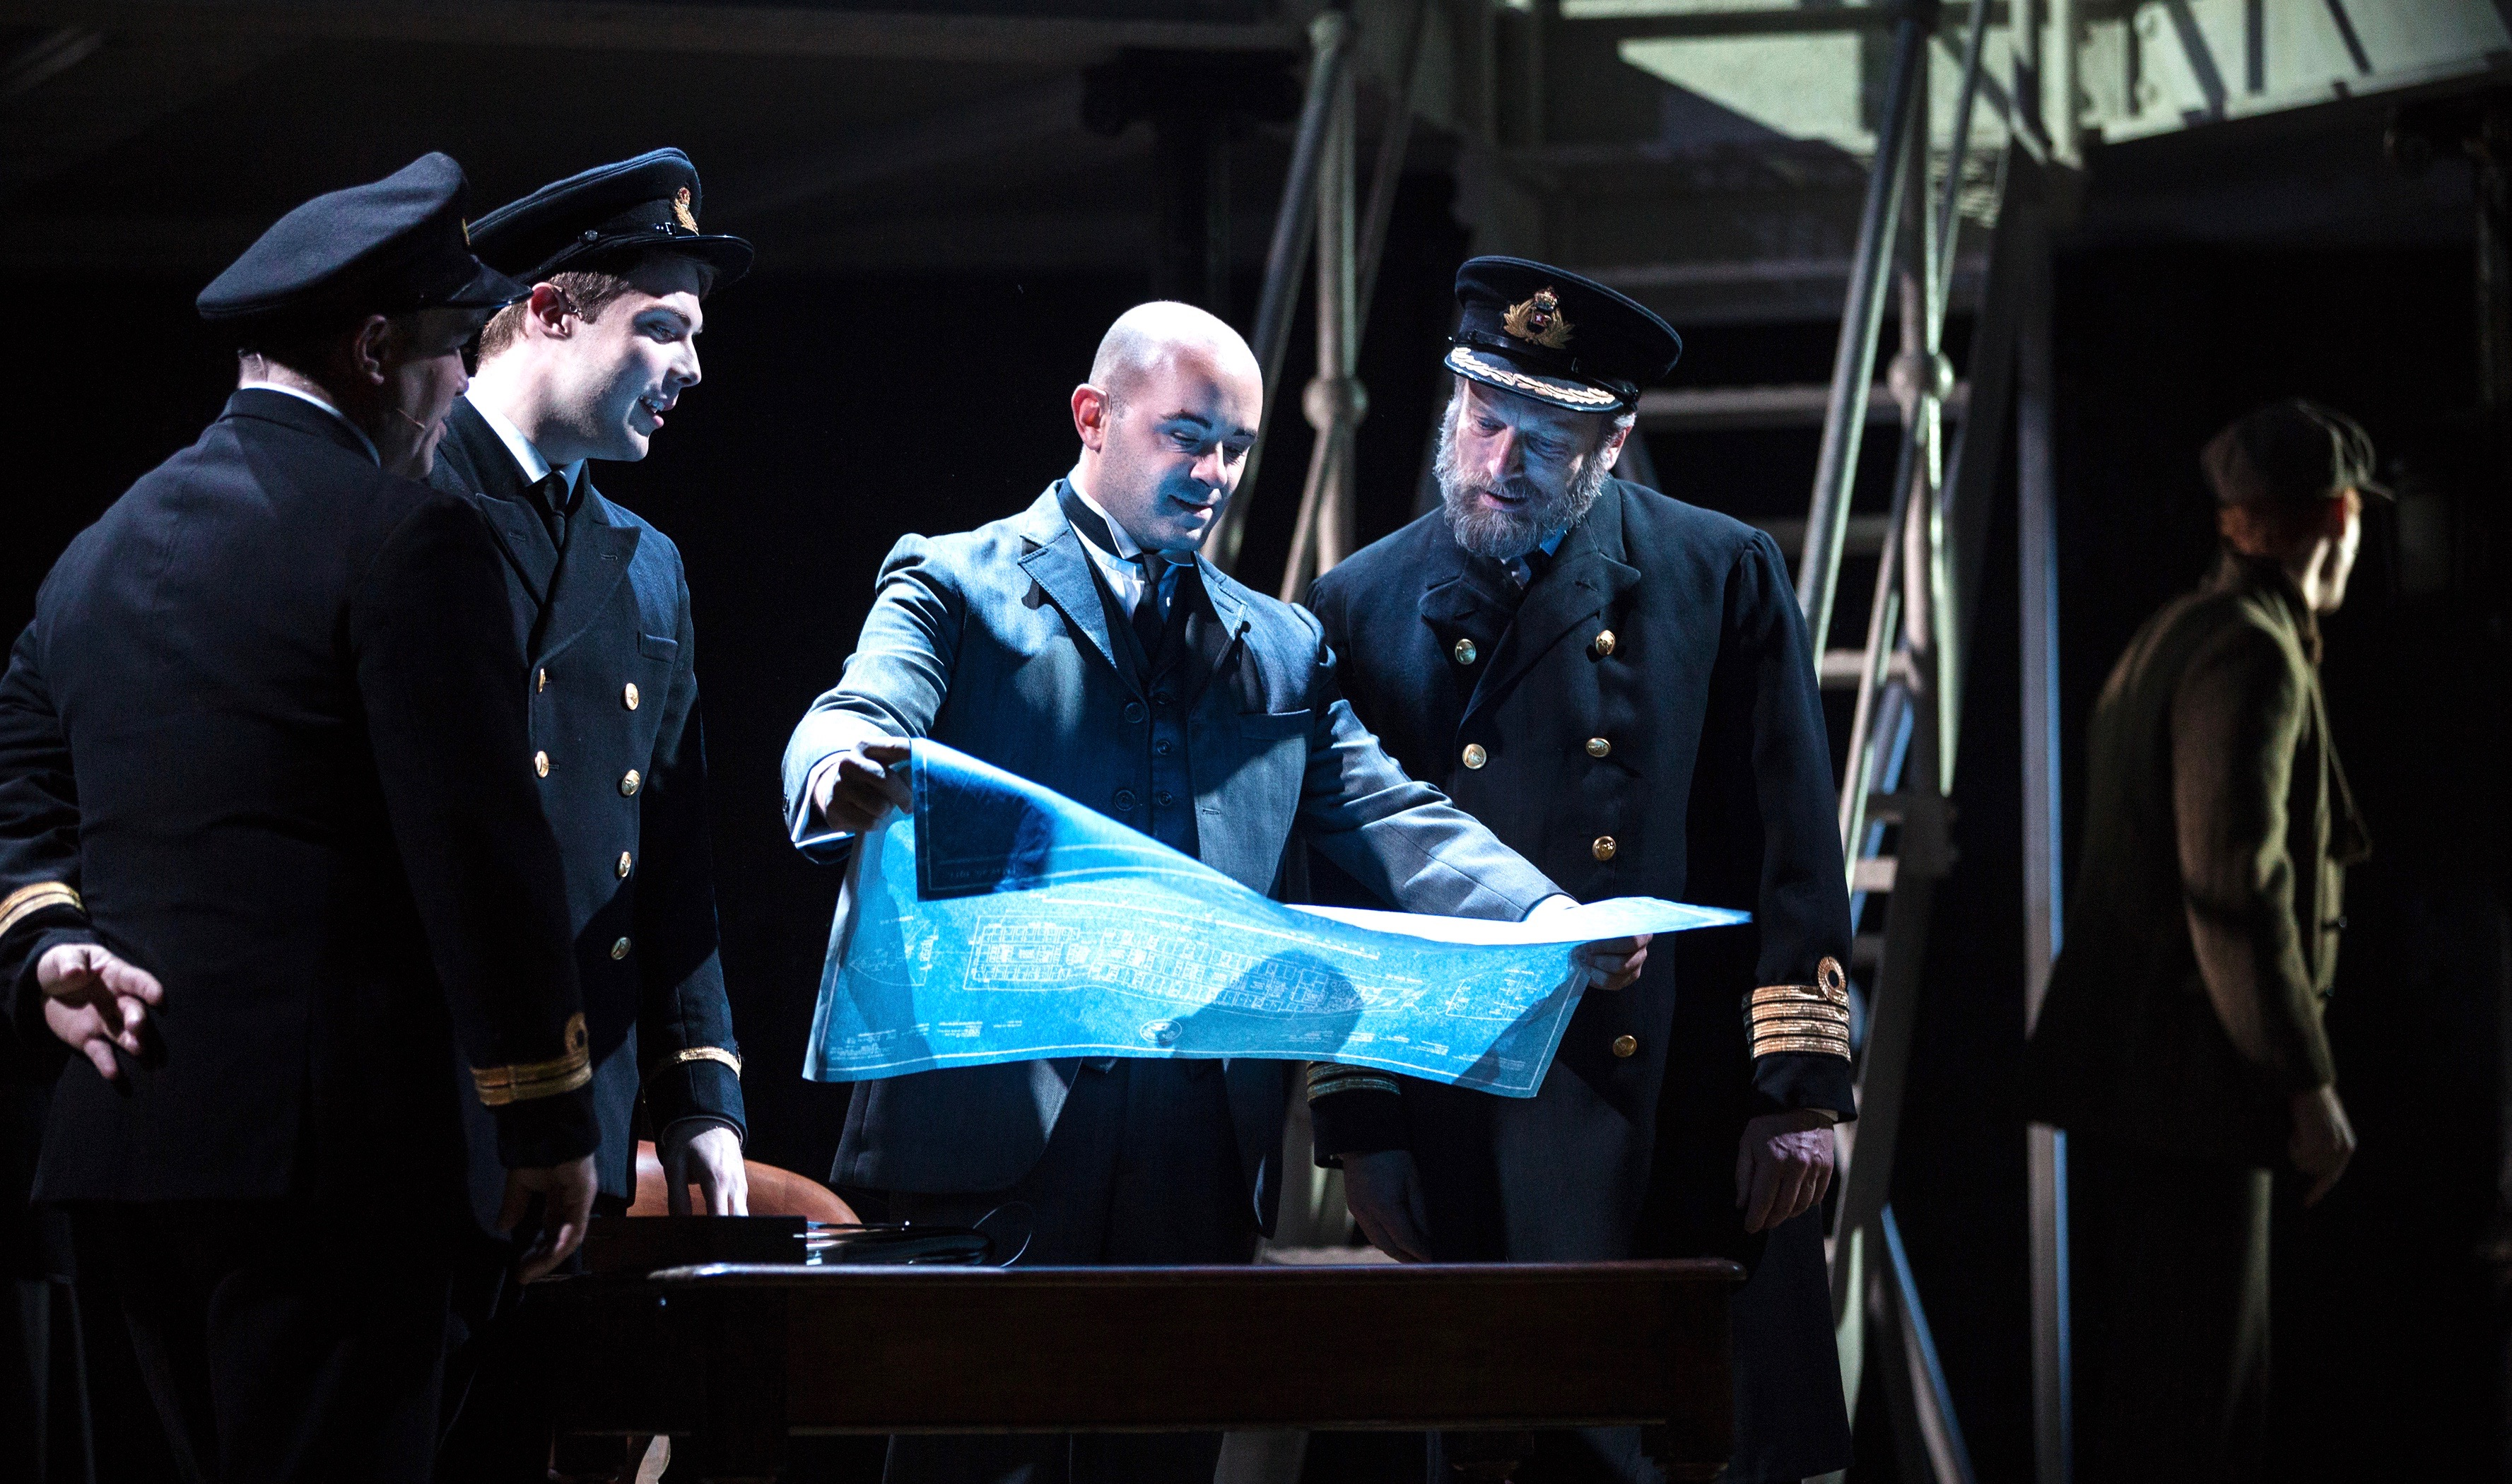 There won't be smooth sailing for these gents: that is a blueprint of the RMS Titanic. Pittsburgh CLO presents the musical 'Titanic' as part of a June theater lineup that includes happier endings as well.